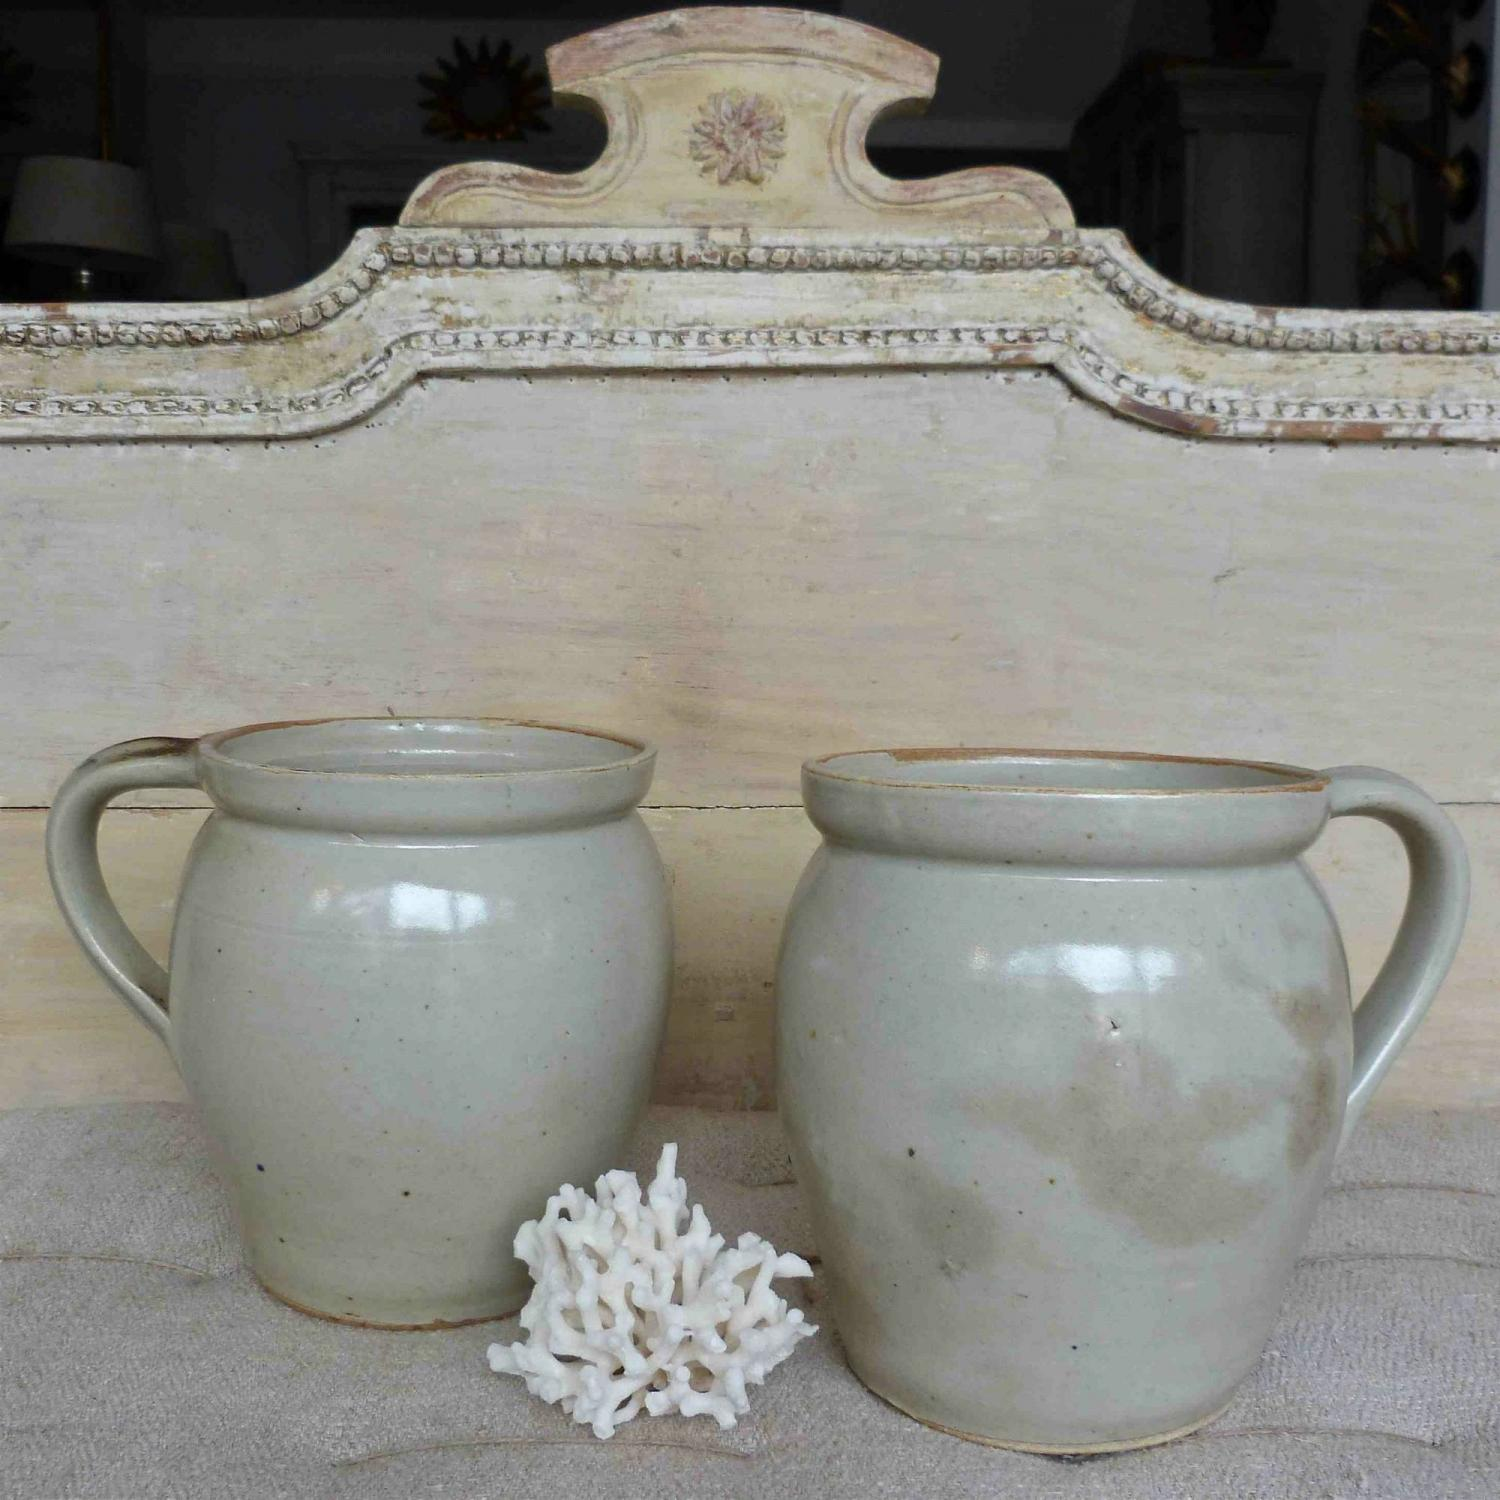 PAIR OF LARGE BURGUNDY POTS WITH LARGE SINGLE HANDLE